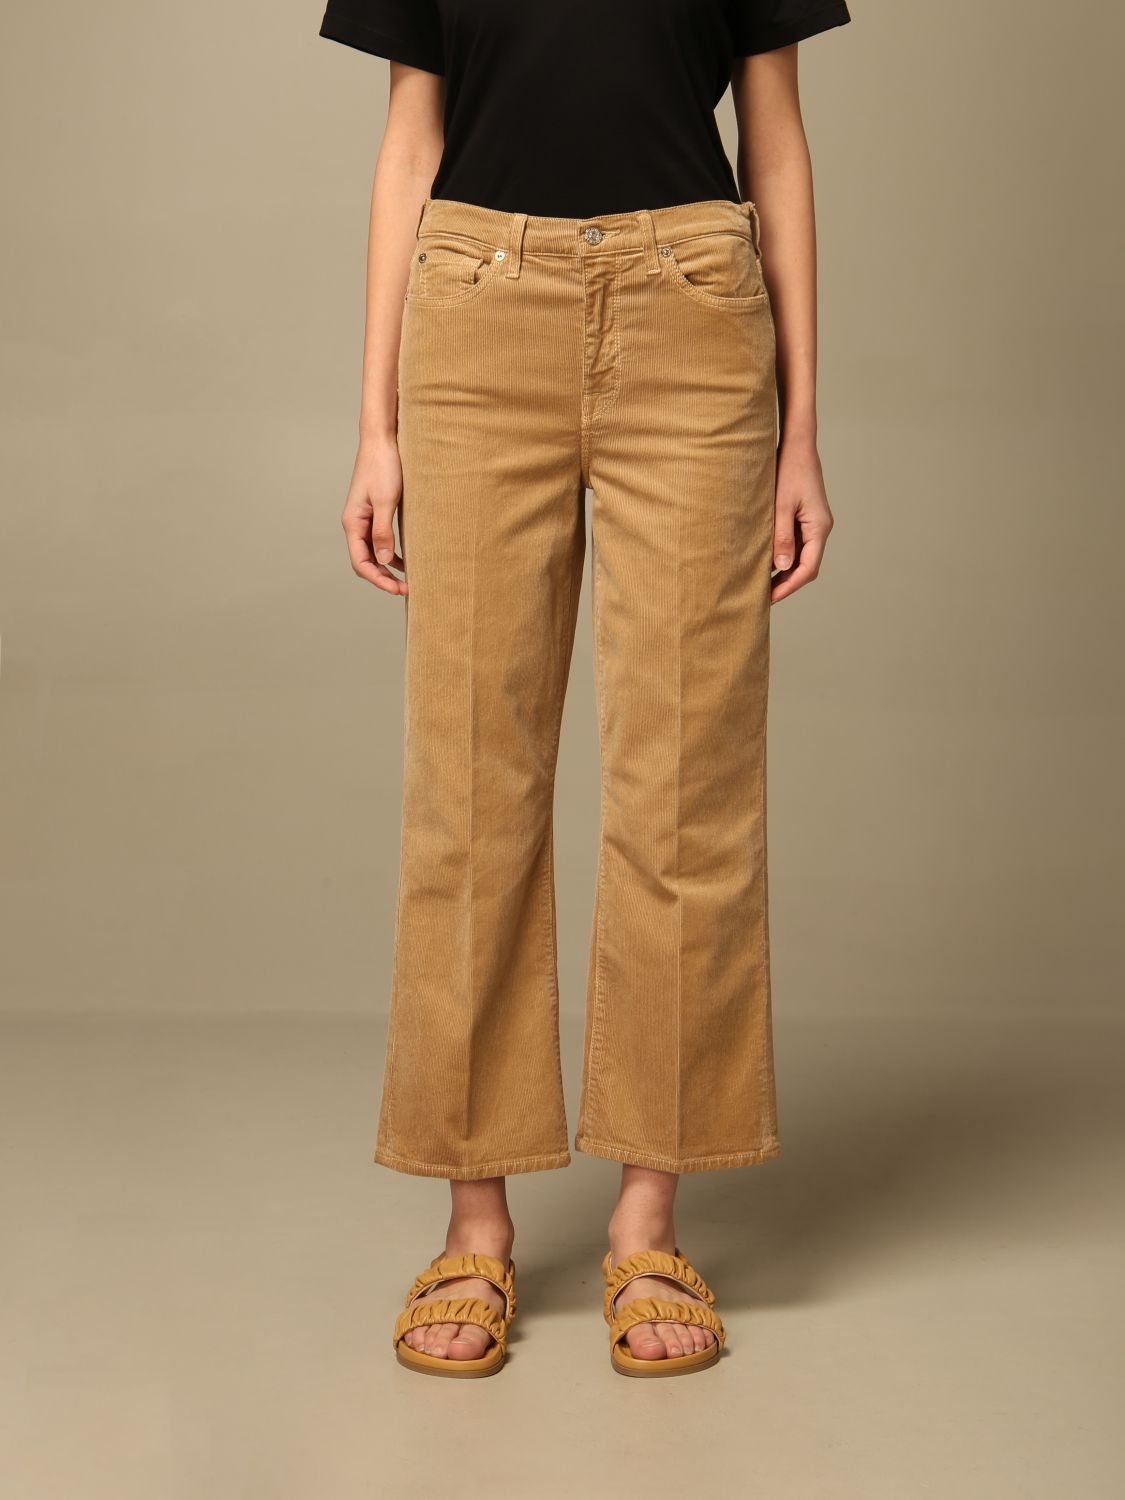 Jeans 7 For All Mankind: Jeans mujer 7 For All Mankind beige 1